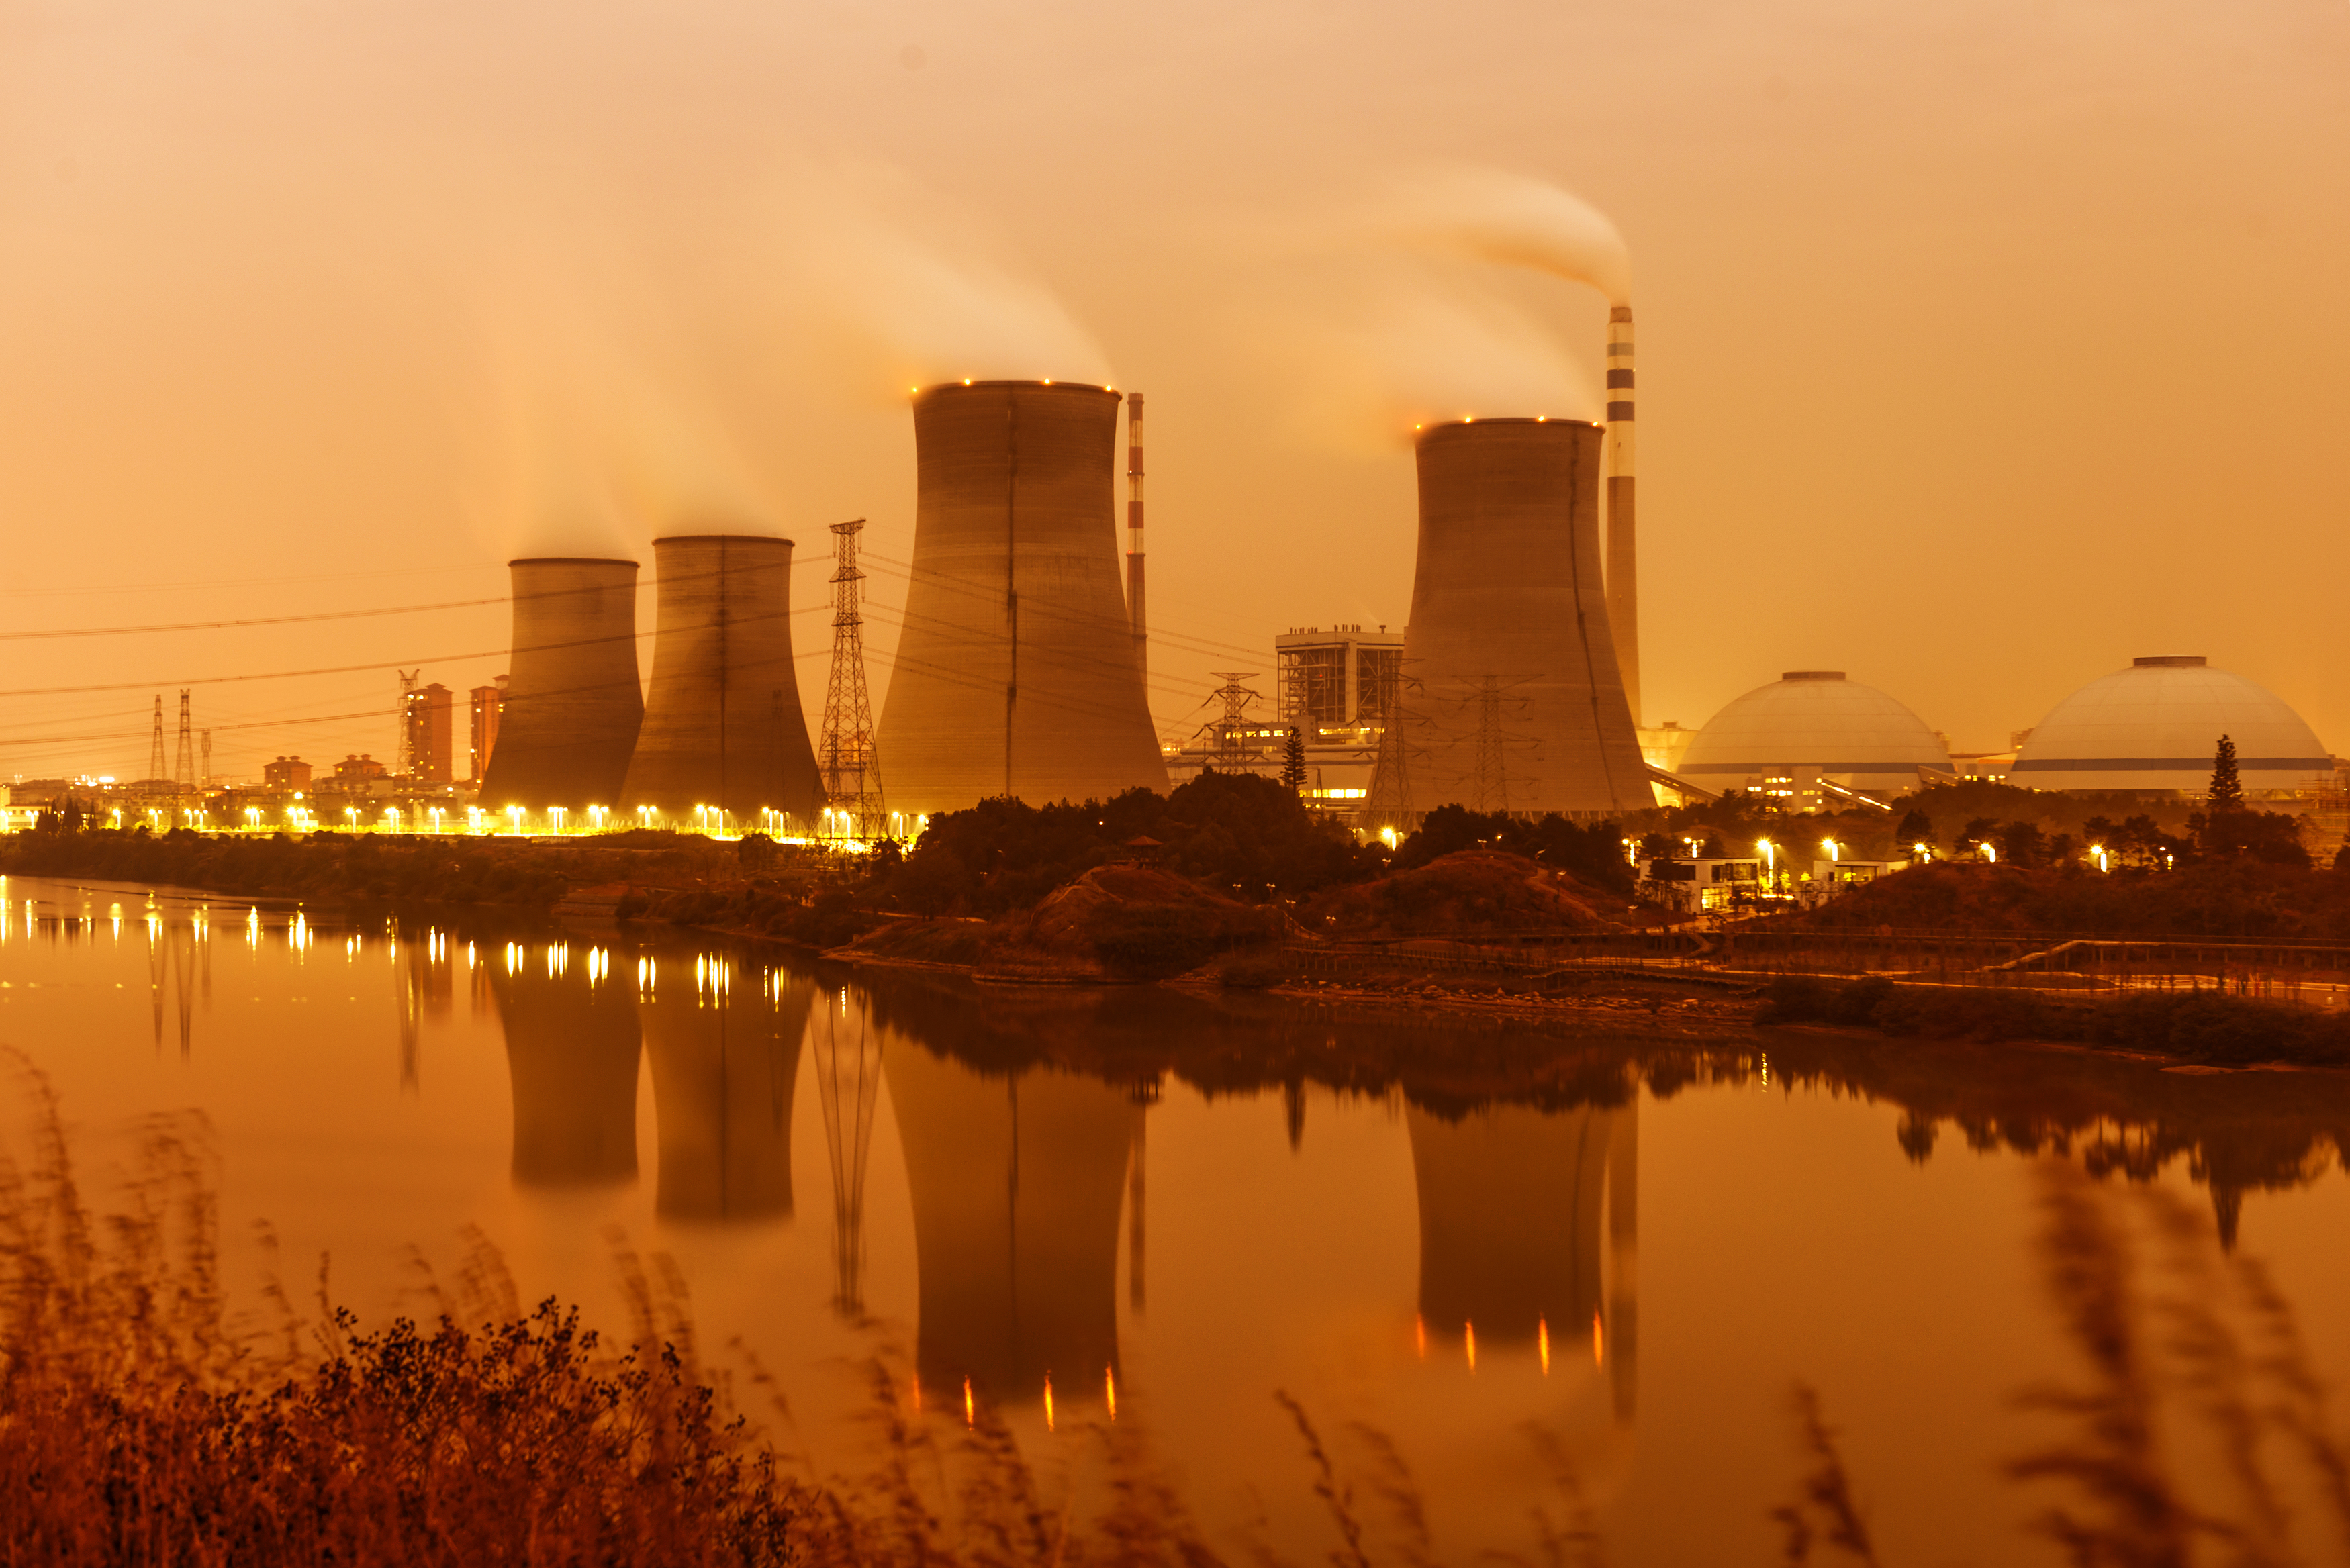 america needs nuclear energy essay Essay: nuclear energy - advantages and disadvantages this essay discusses some of the major advantages and disadvantages of nuclear energy a solution to the waste management problem needs to be explored and developed.